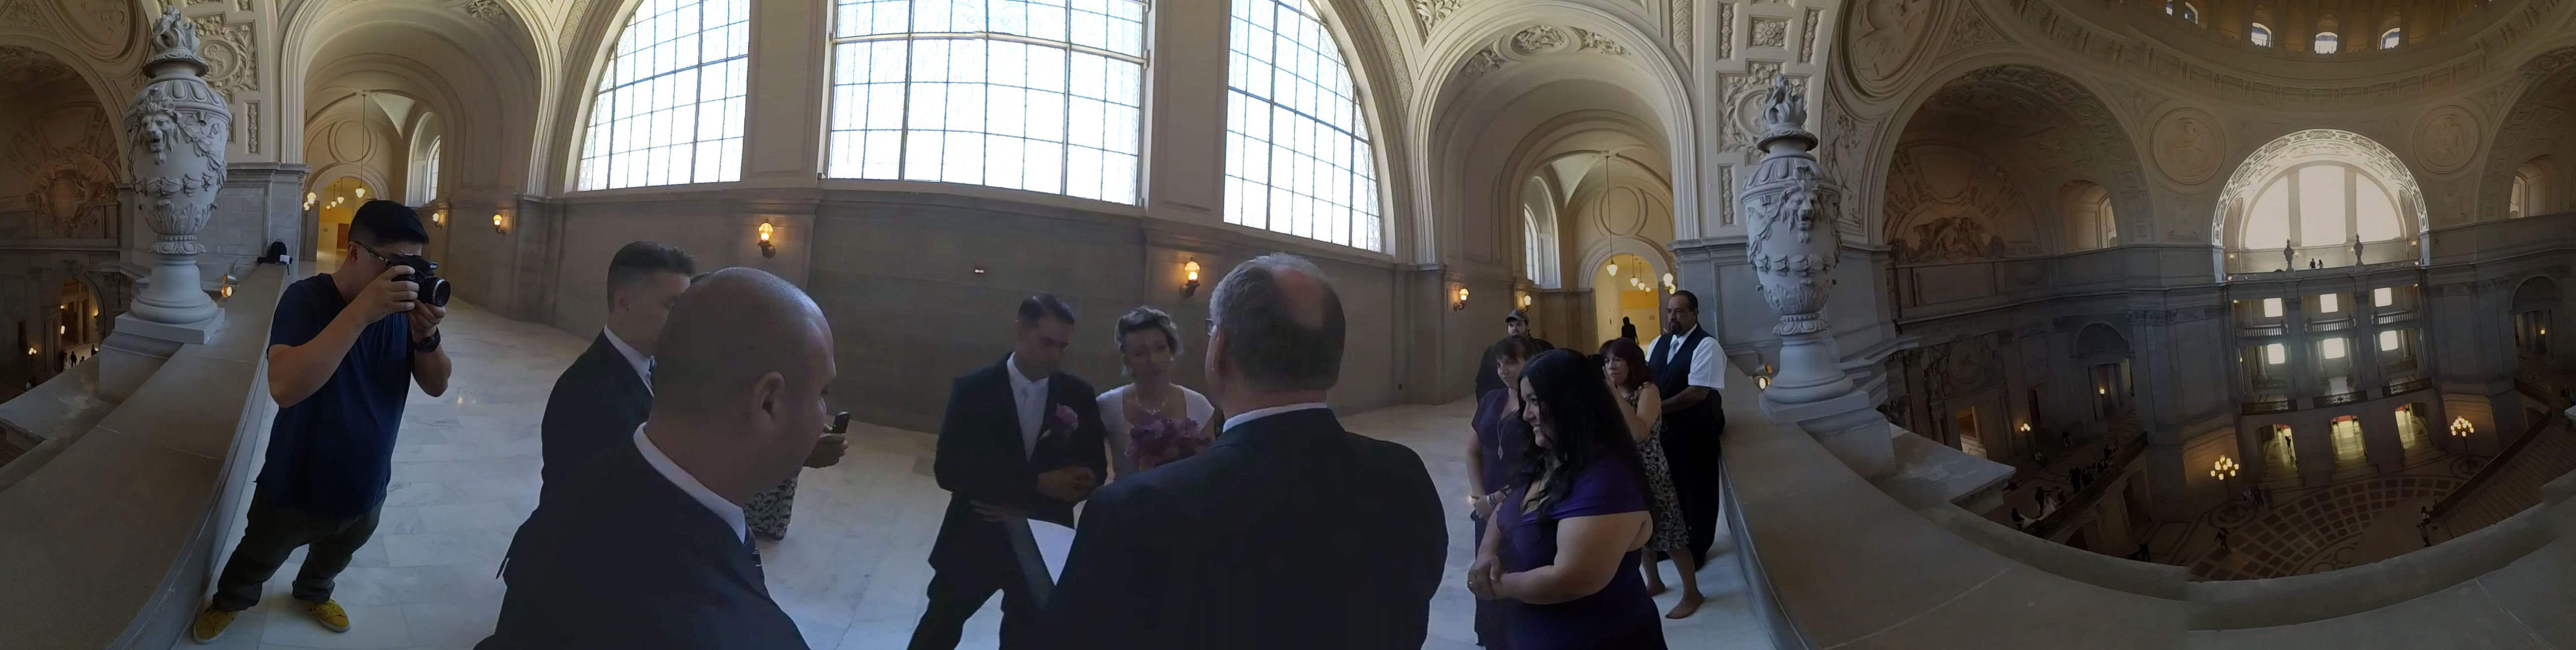 Your Daily VR Fix Today First VR Wedding at San Francisco City